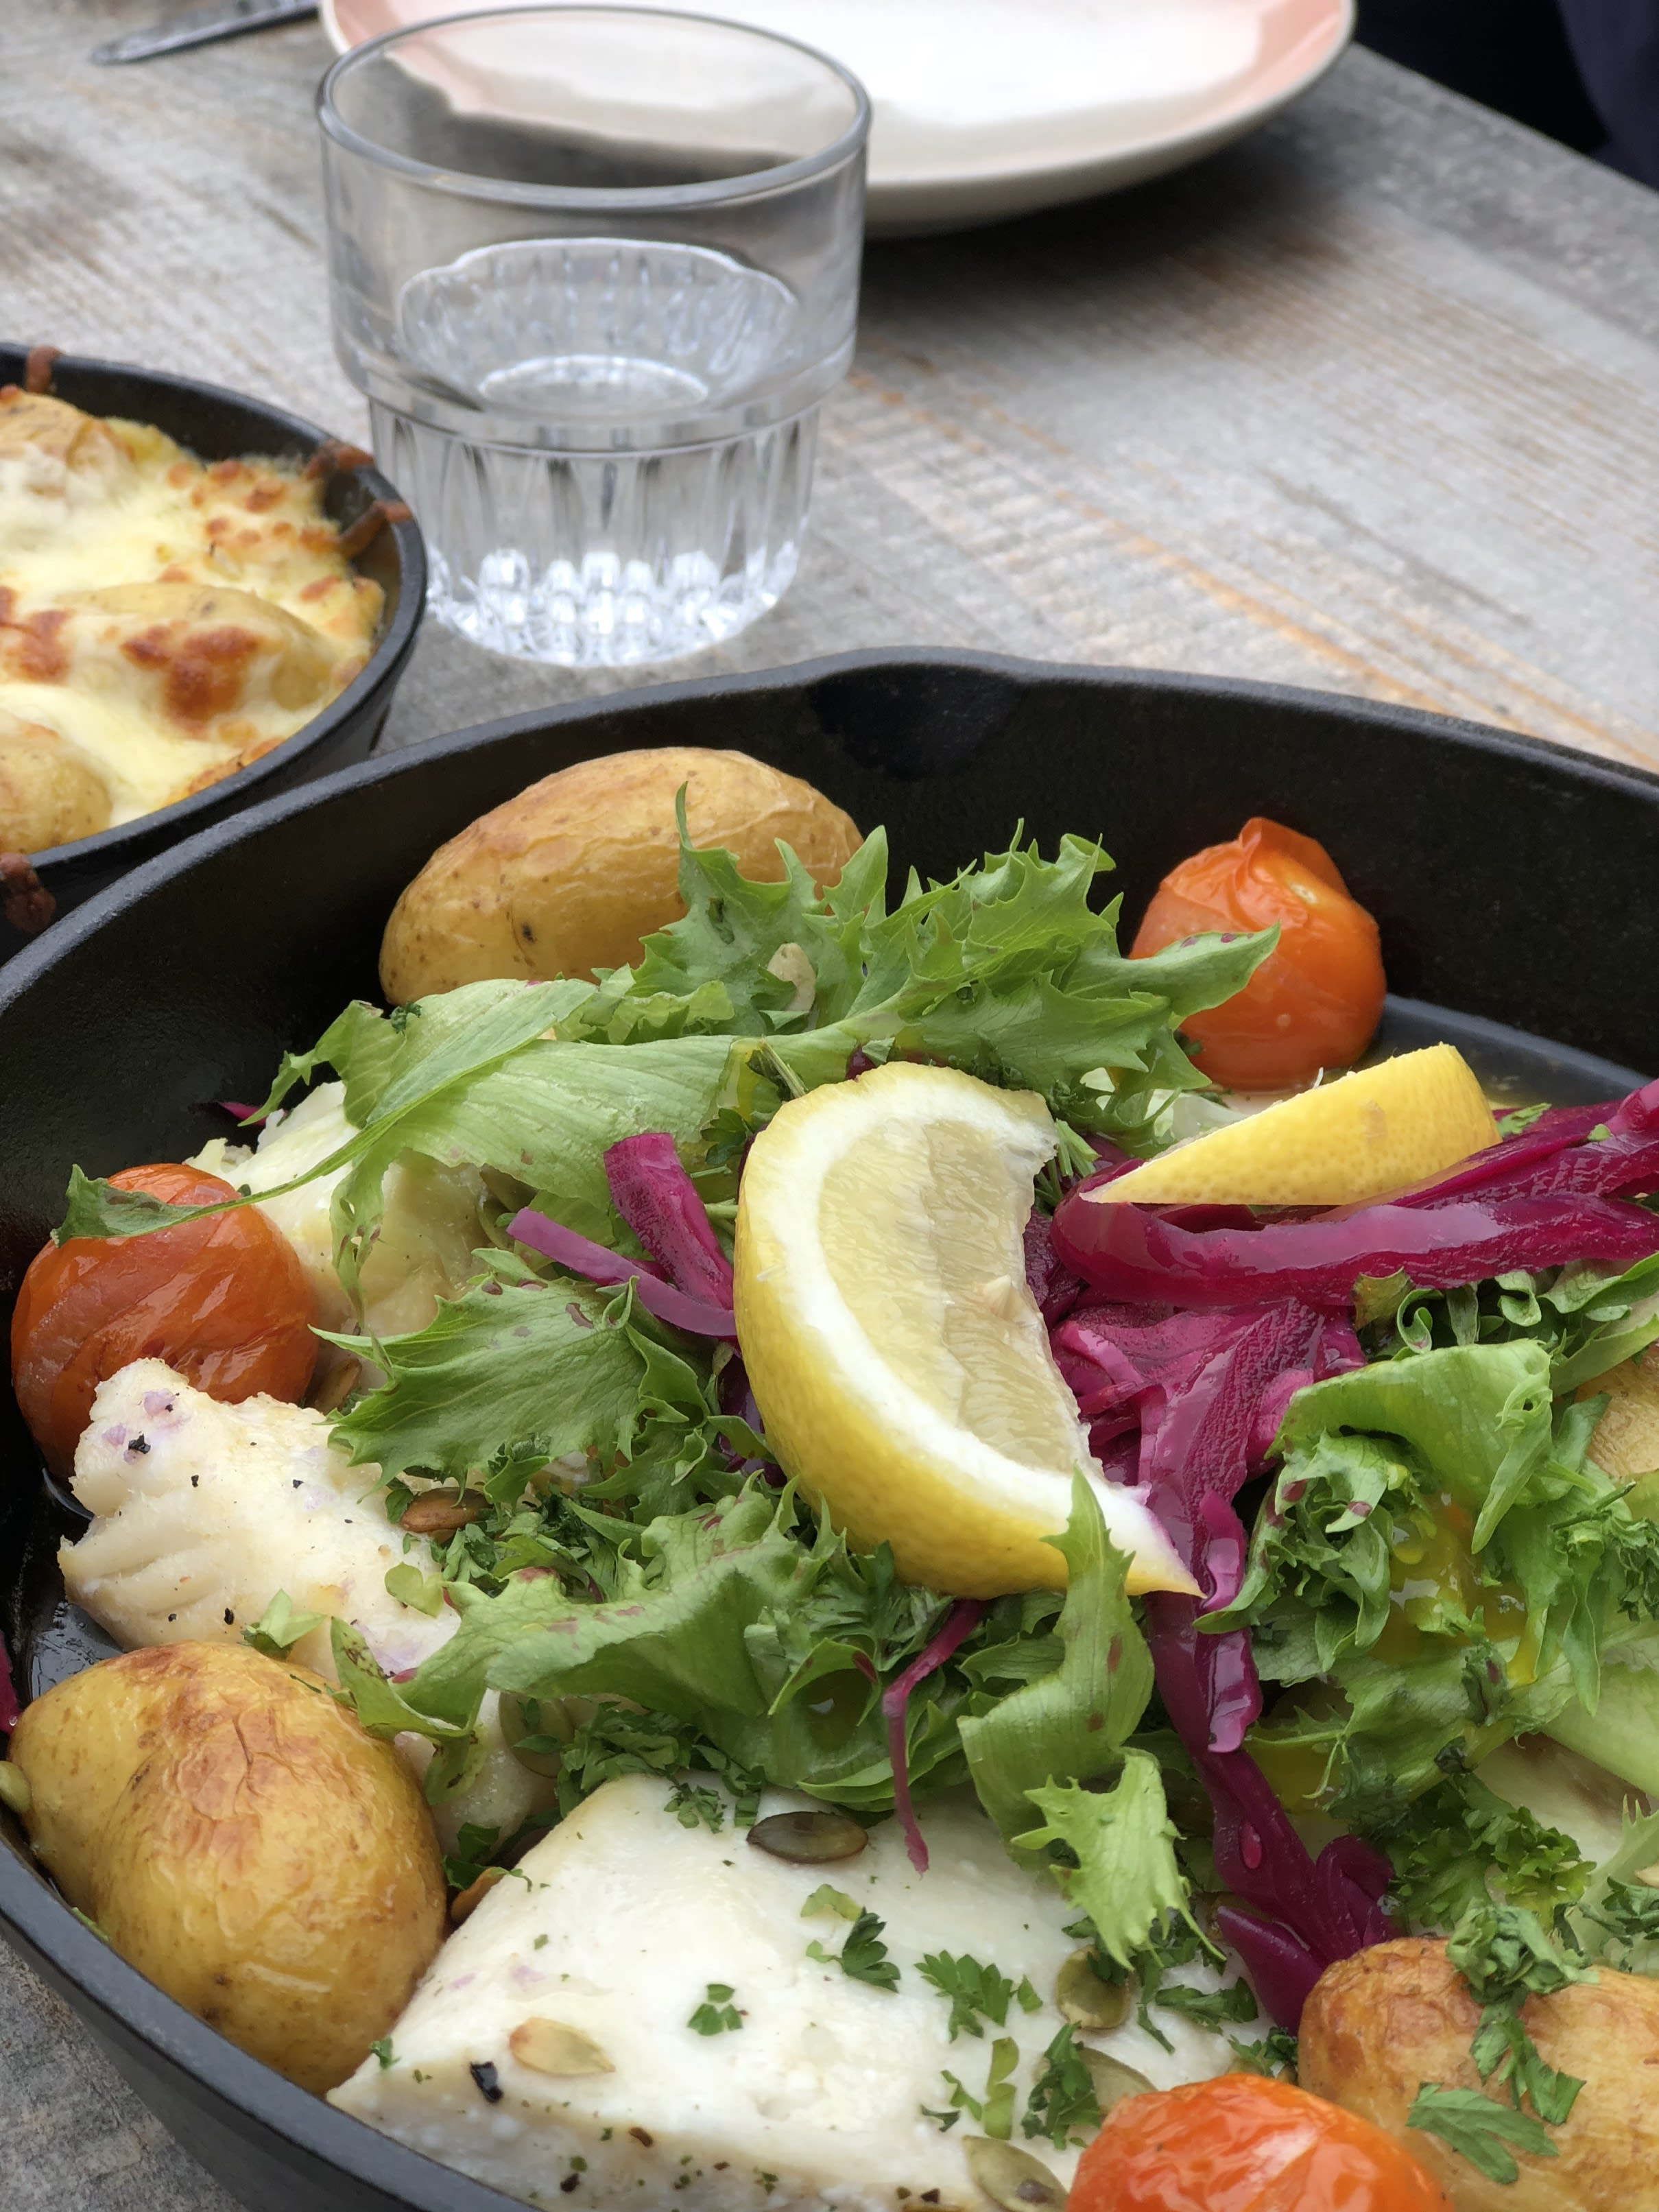 a close up of a dish with fish, salad, potatoes, cabbage and lemon in a black oven dish